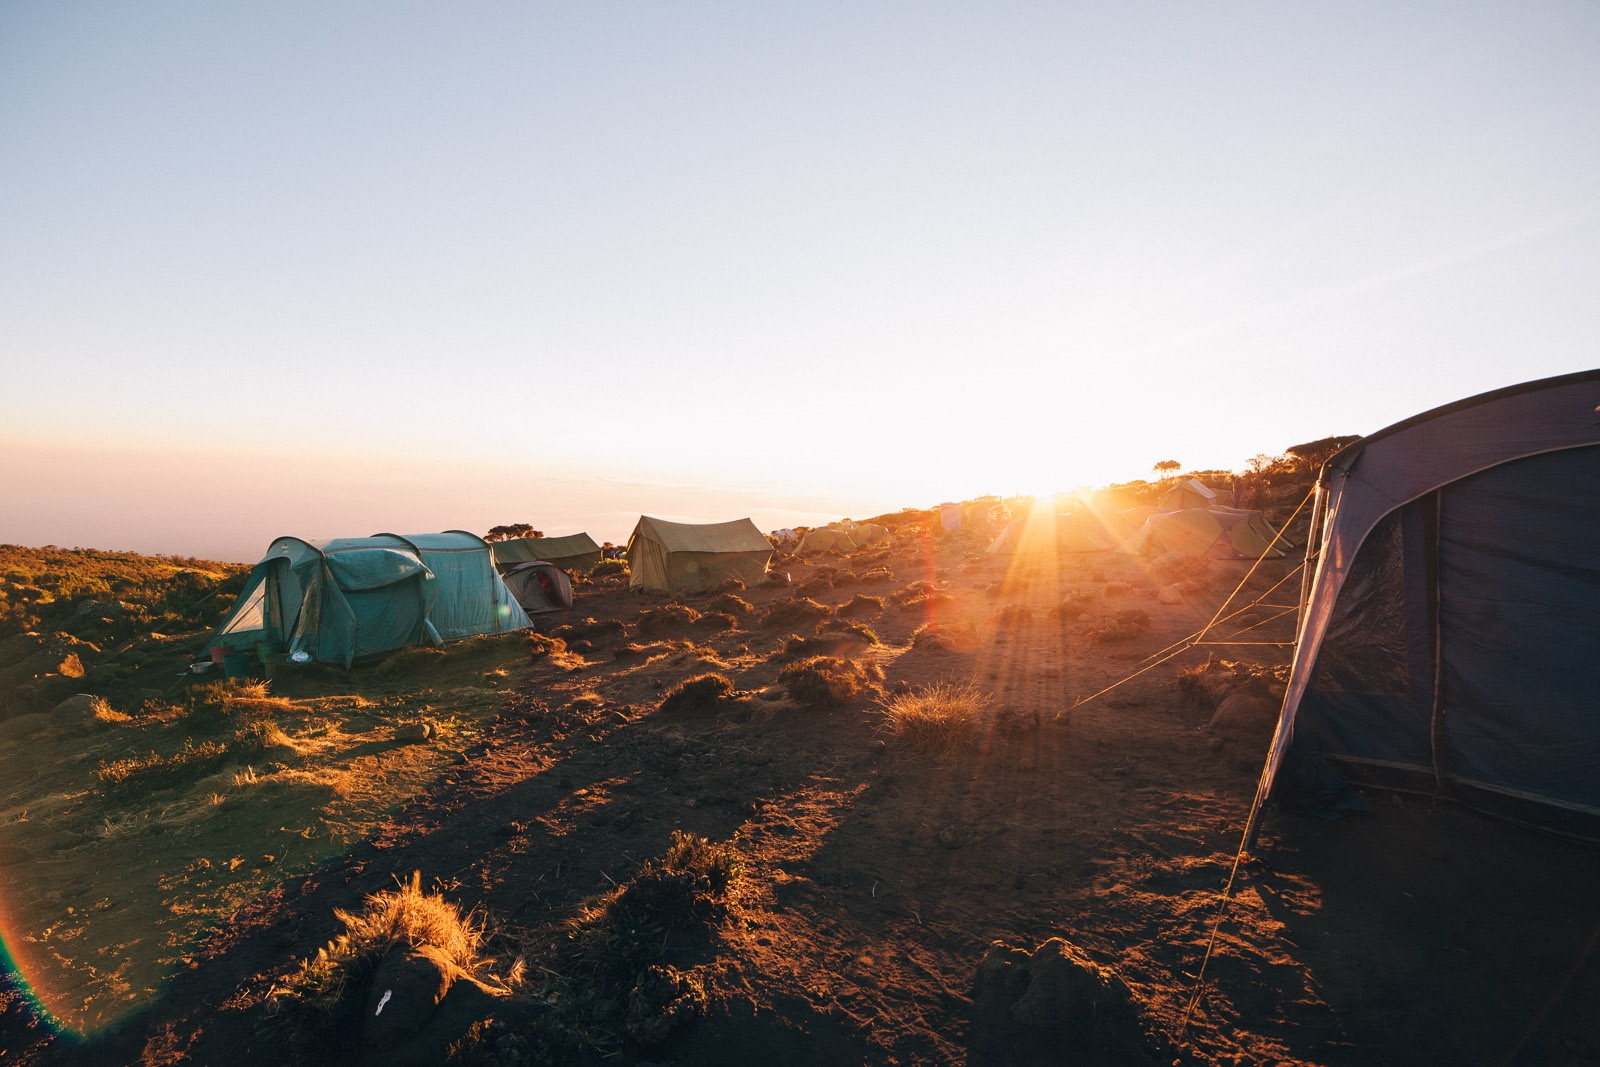 kilimanjaro morning sunrise camp